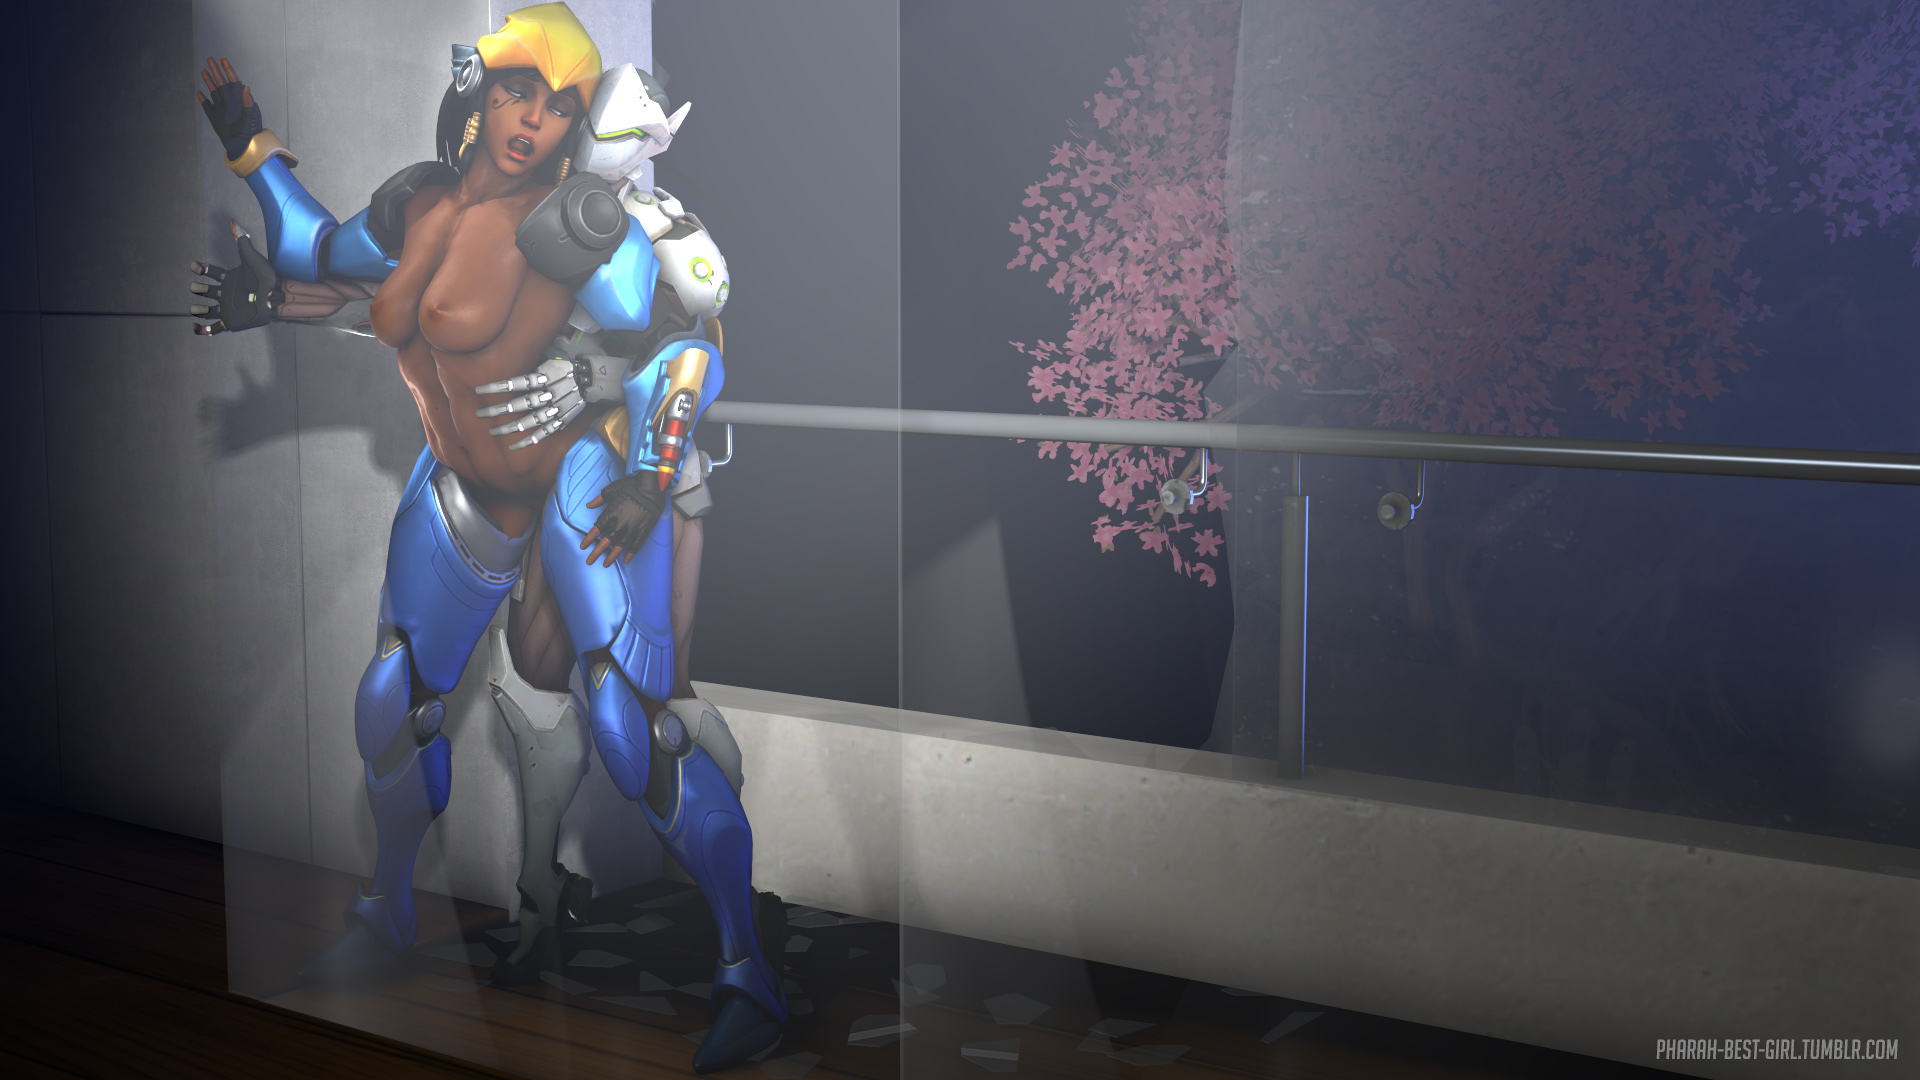 2201894 - Genji Overlook Pharah